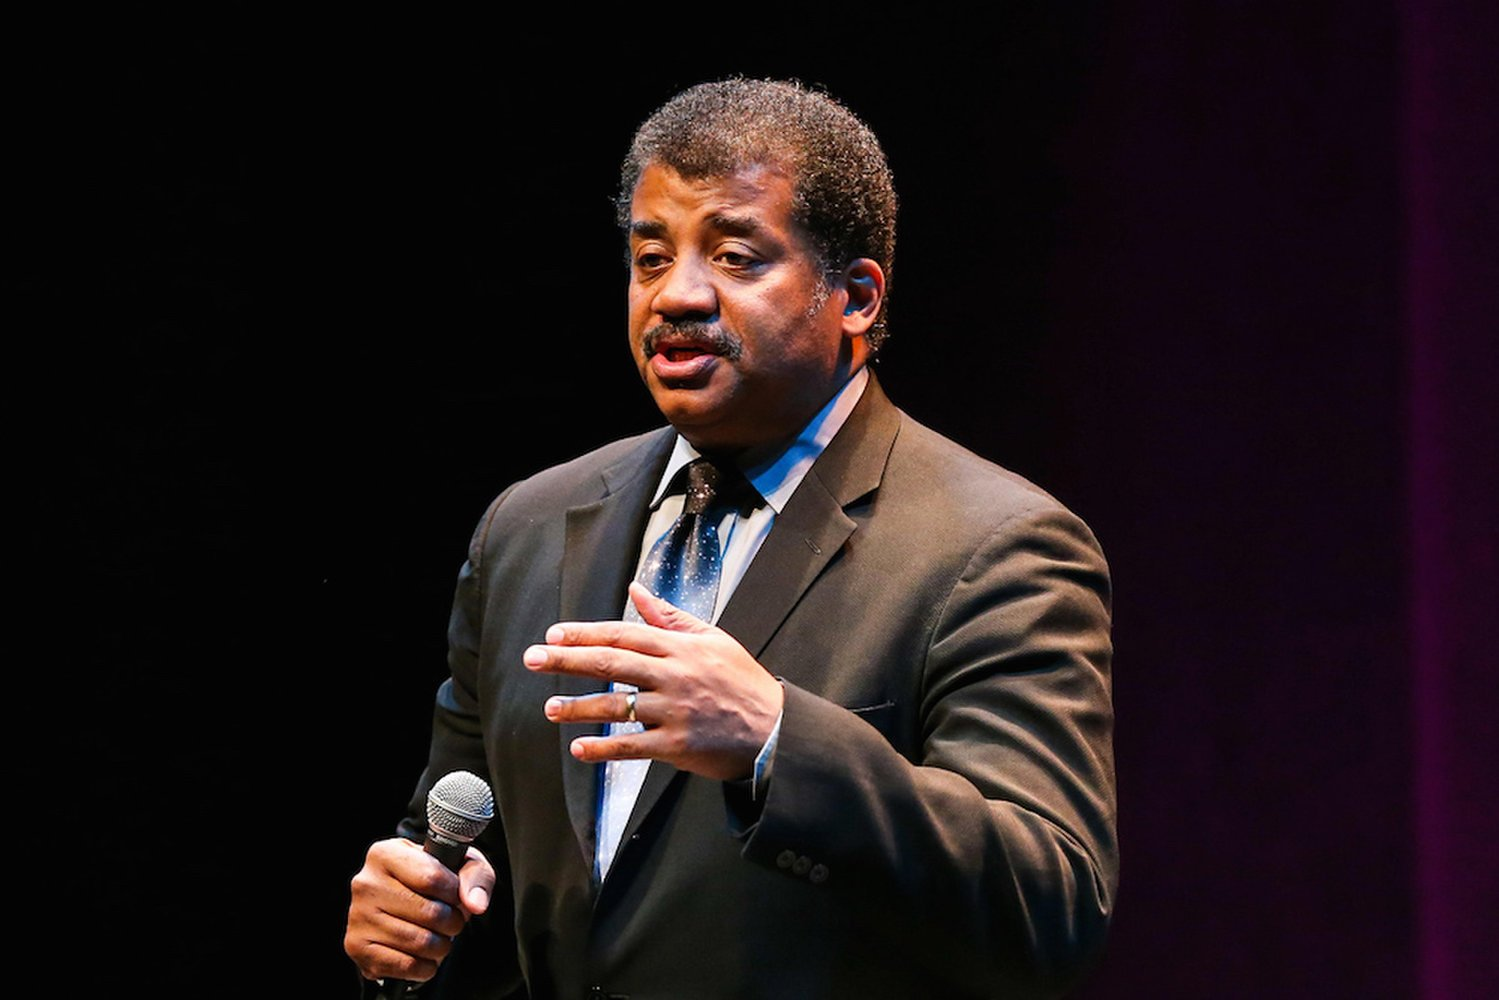 Human-Caused Climate Change Could Doom Coastal Cities, Neil Tyson Says https://t.co/L5rnkNn7oI https://t.co/Ag41BF9df6